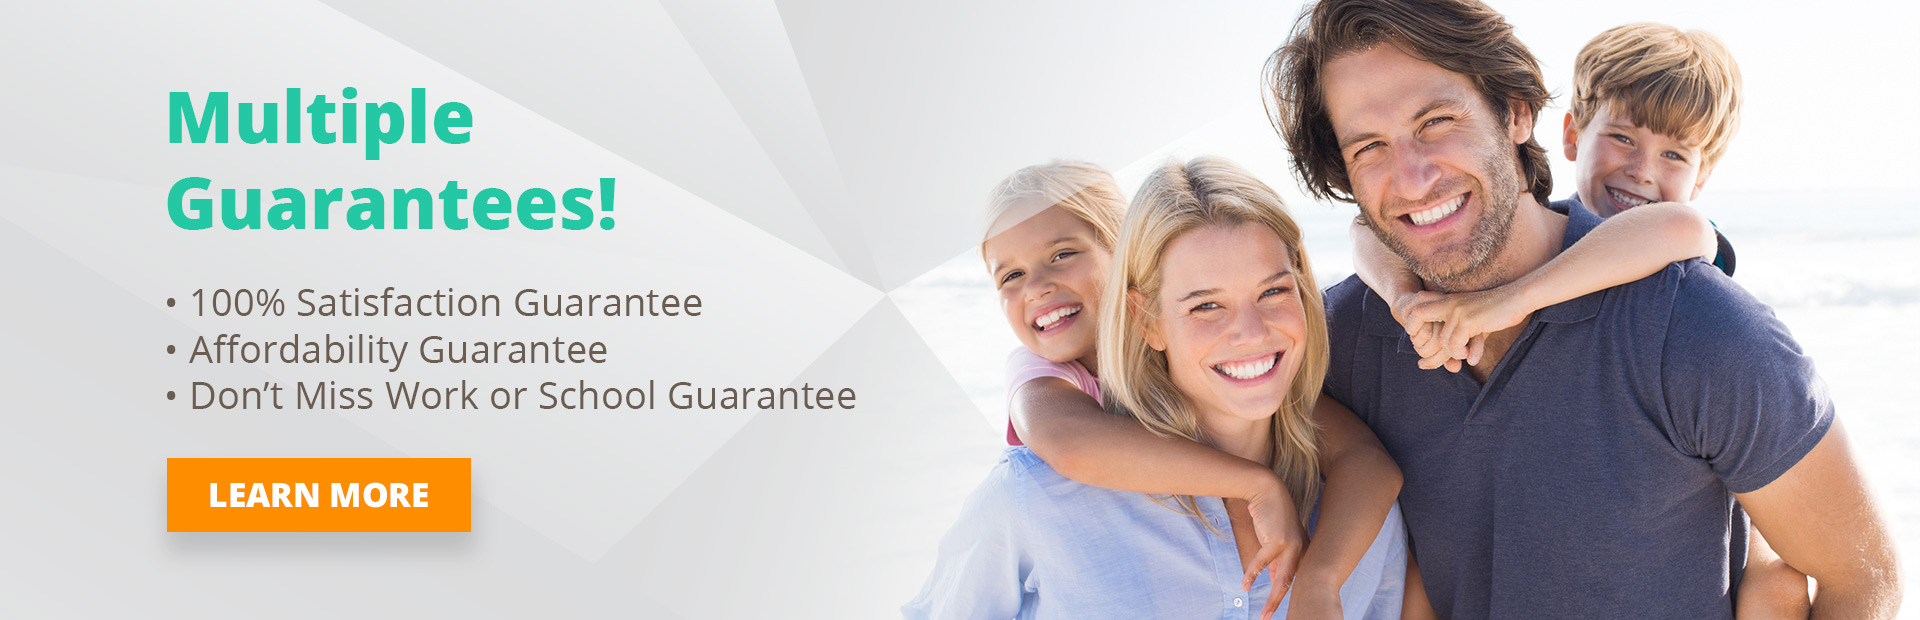 multiple guarantees at bluffton orthodontics